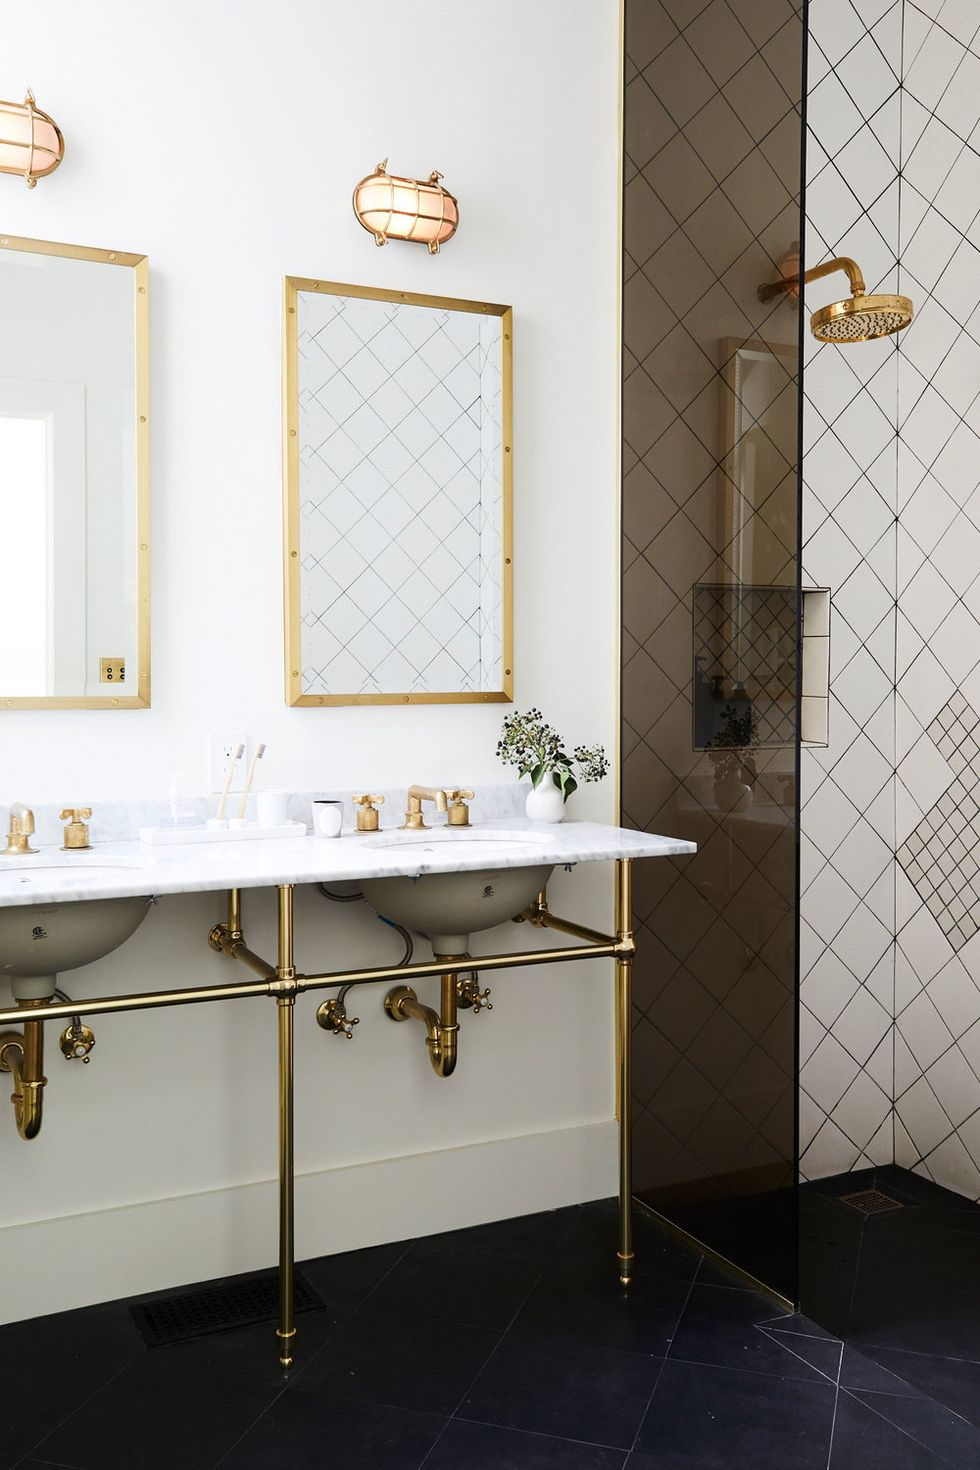 Black and white bathroom, brass accents